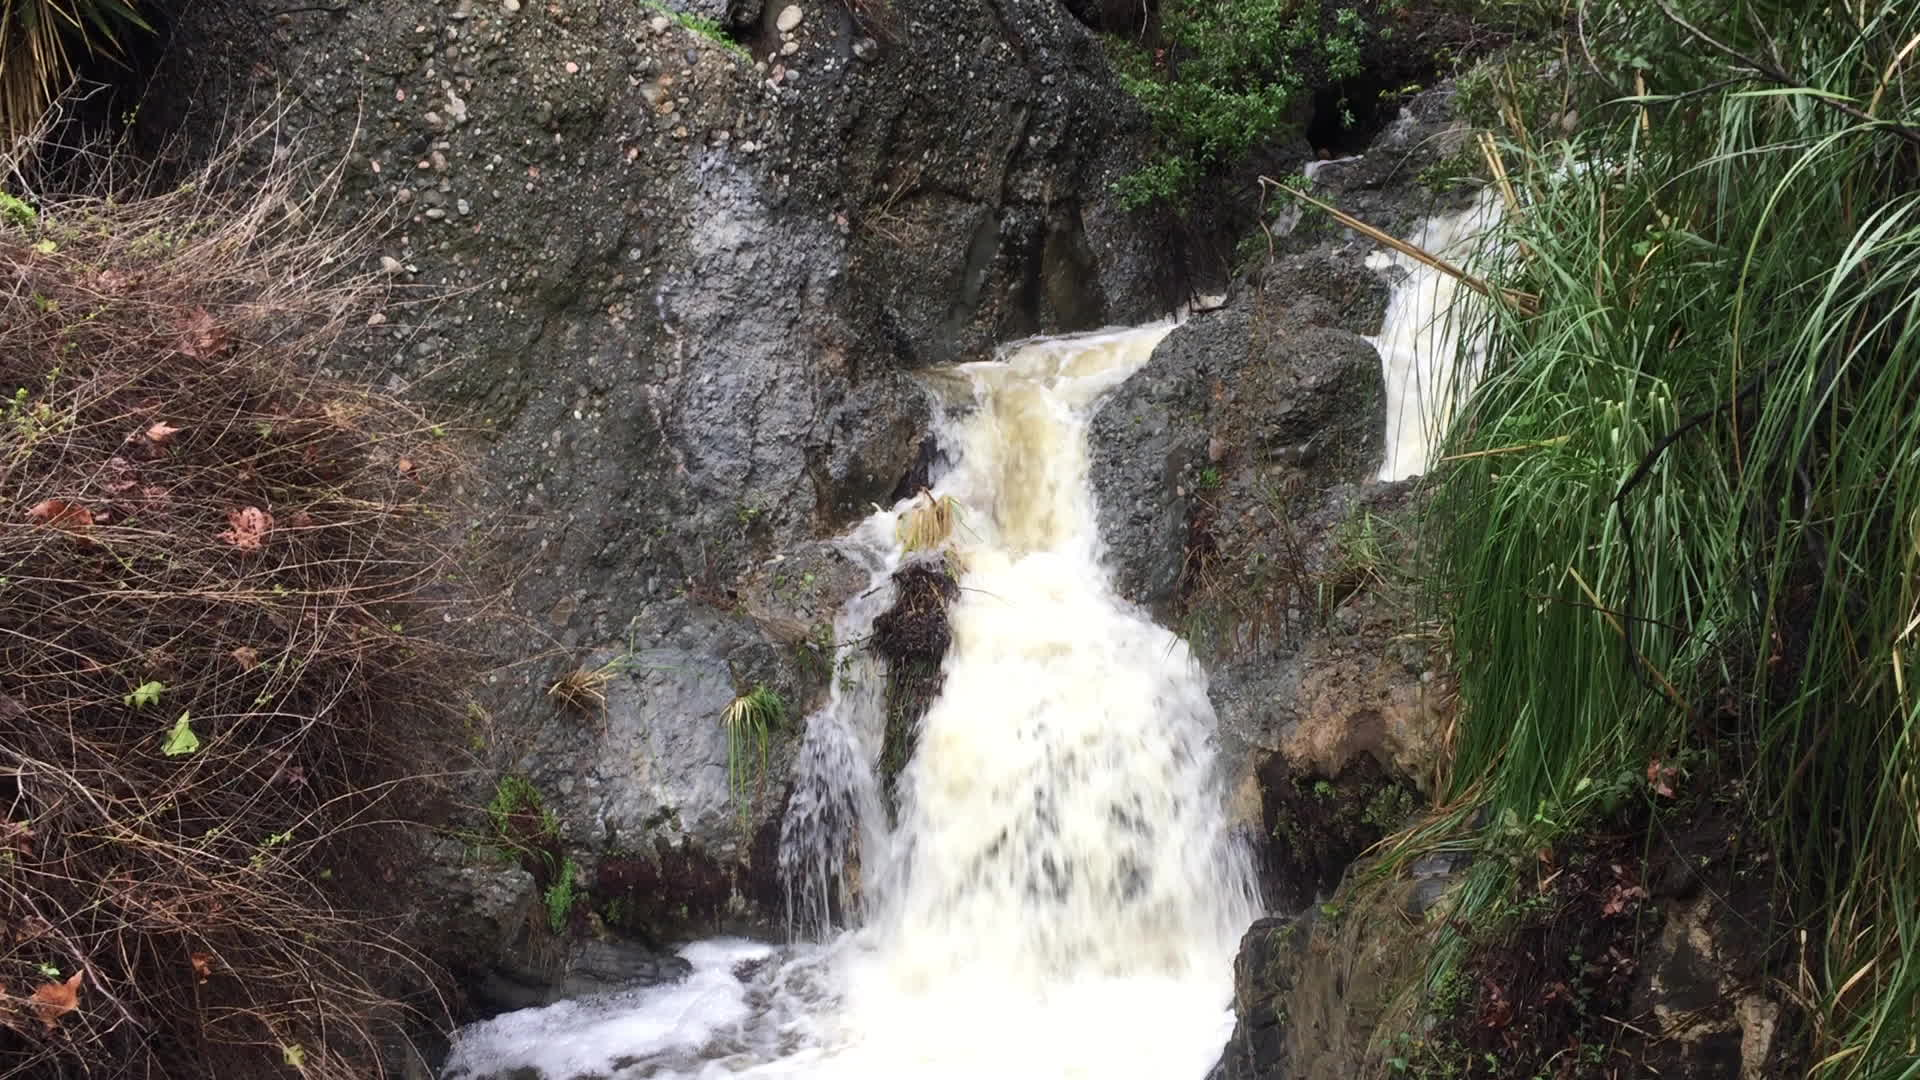 LosAngeles, For those that hike Temescal Canyon, a view from yesterday of the waterfall that's usually just a